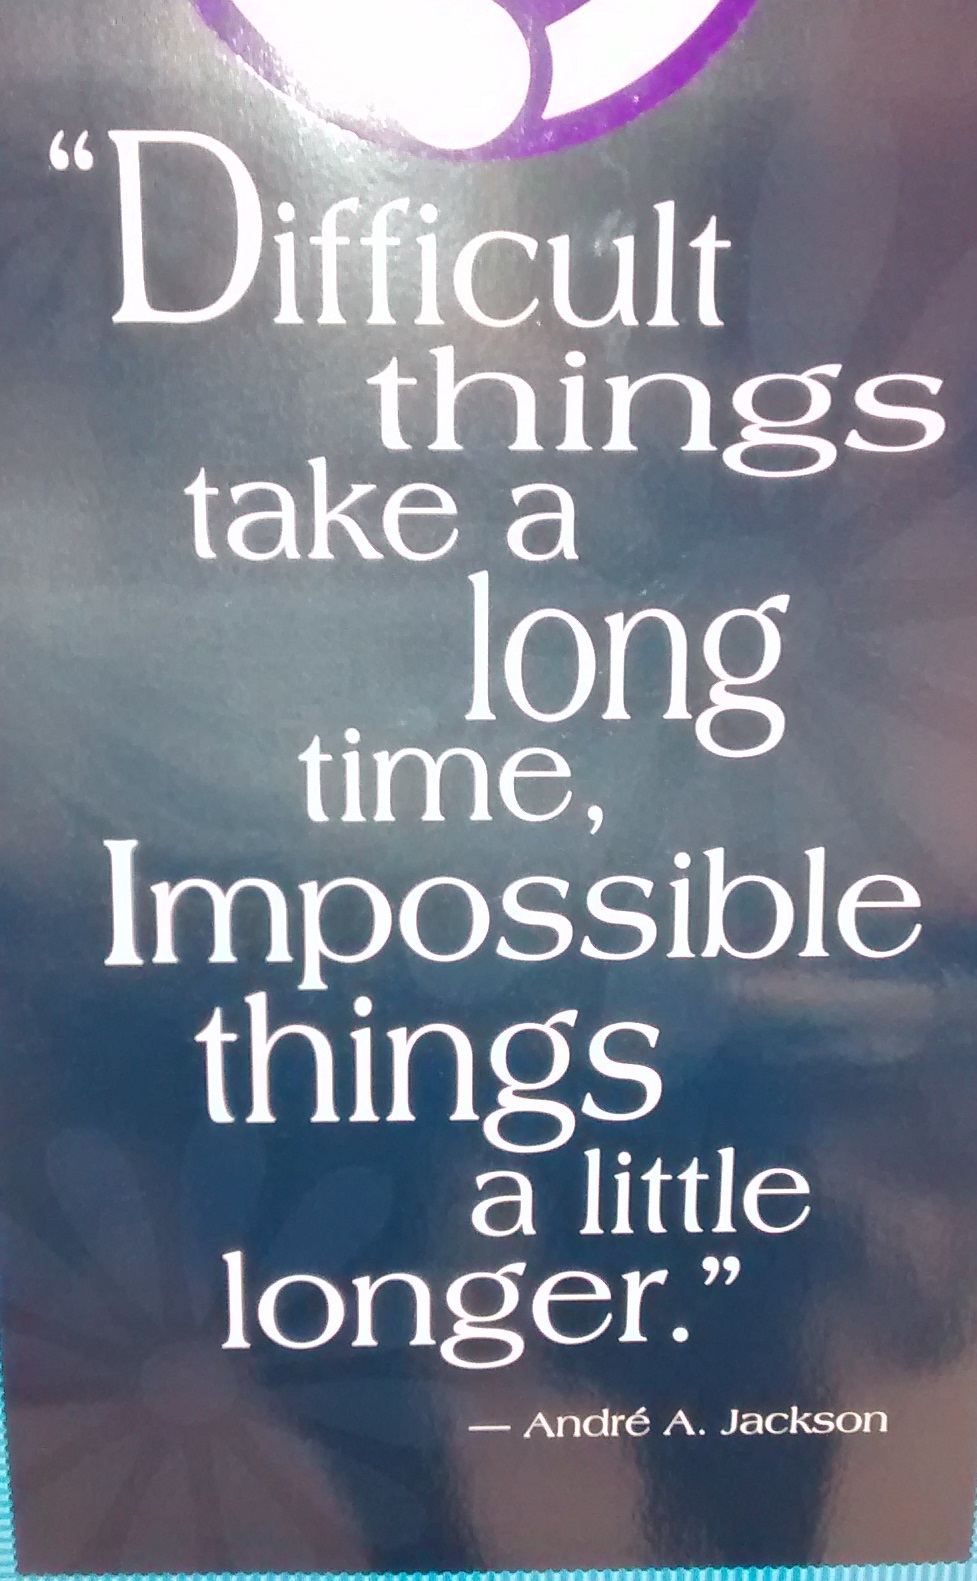 Make time for impossible things.